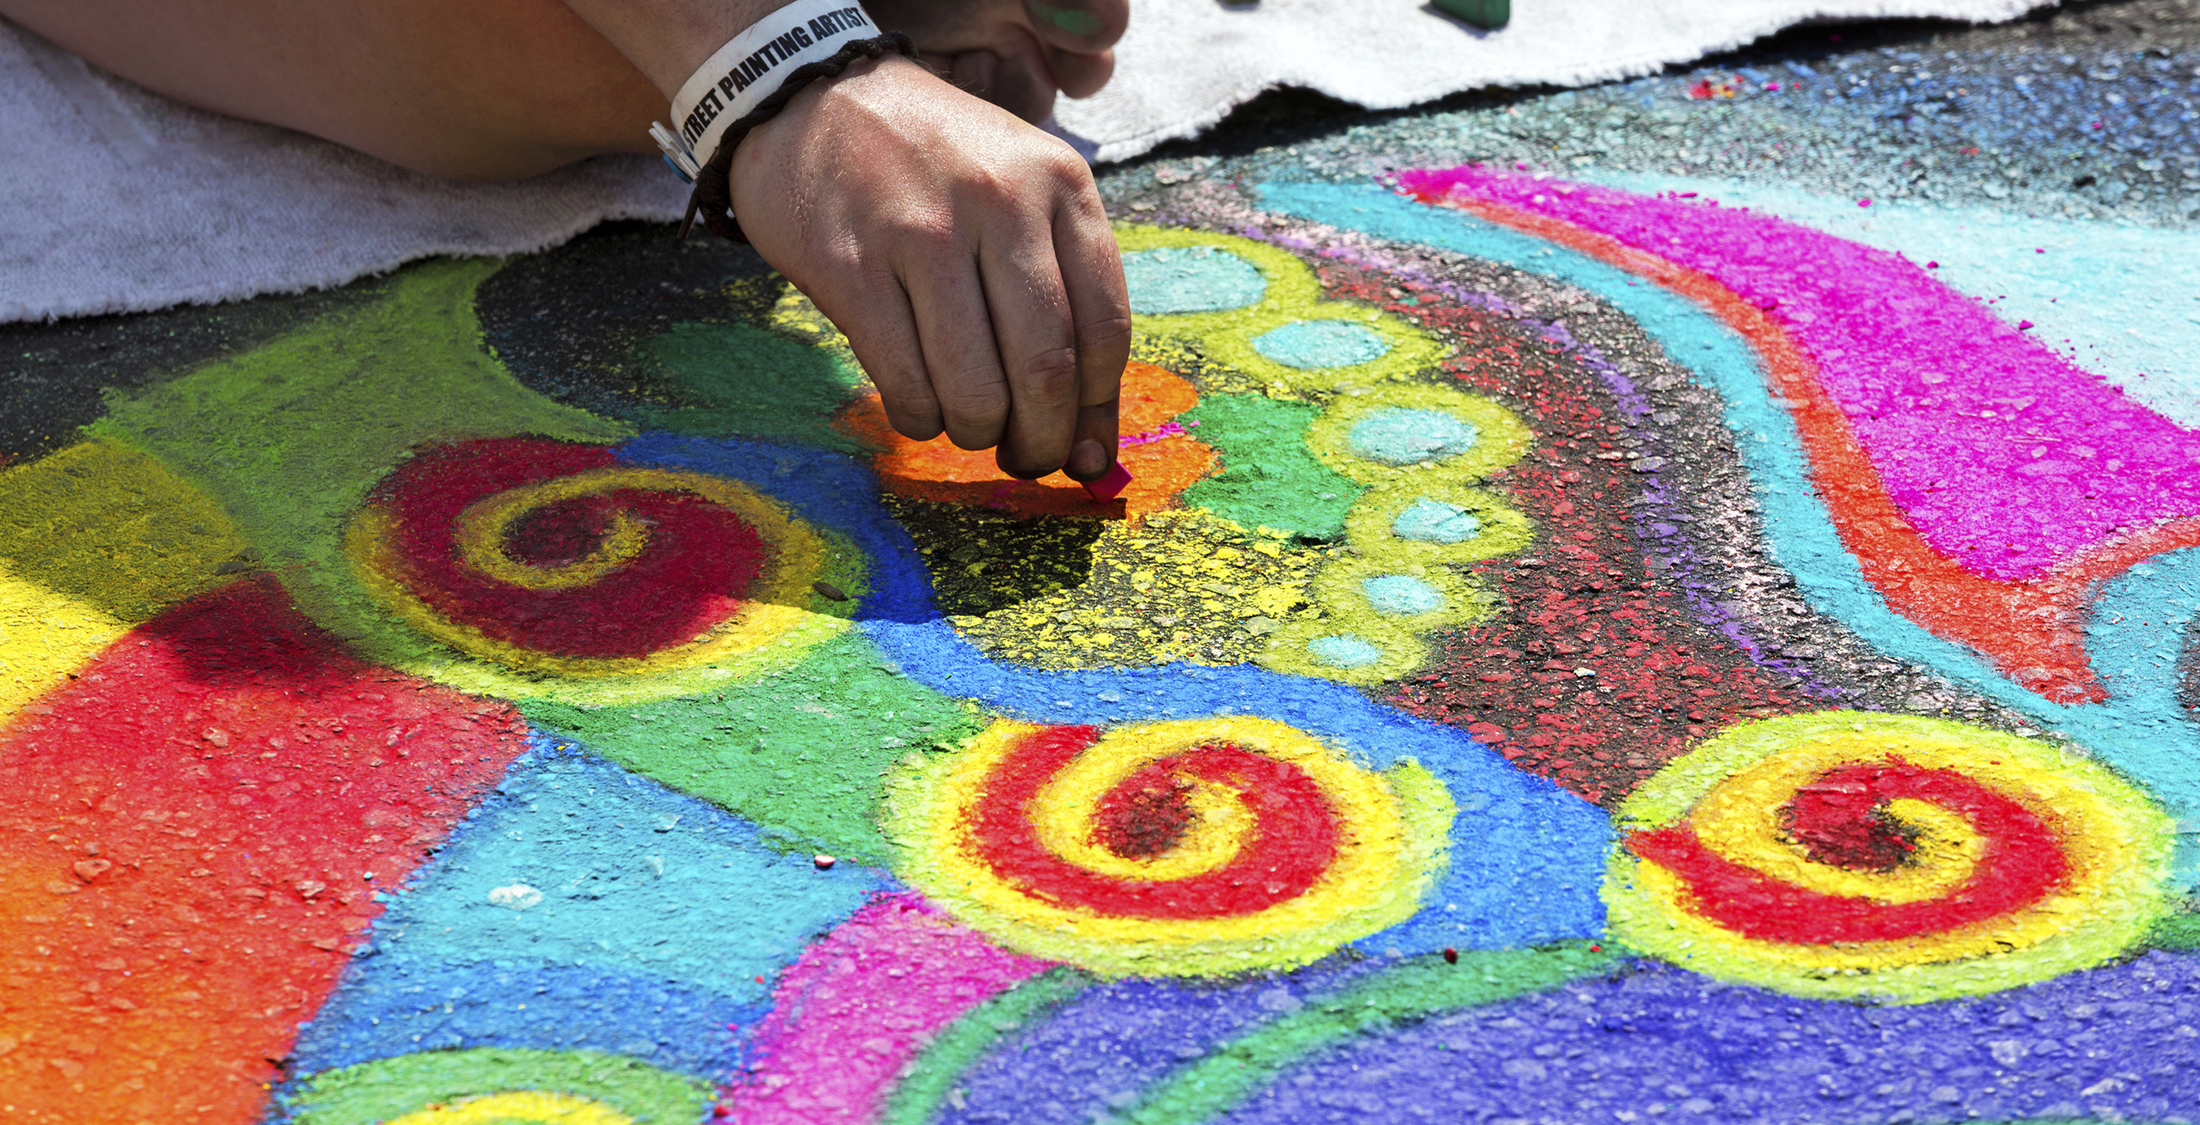 experience some sidewalk chalk art